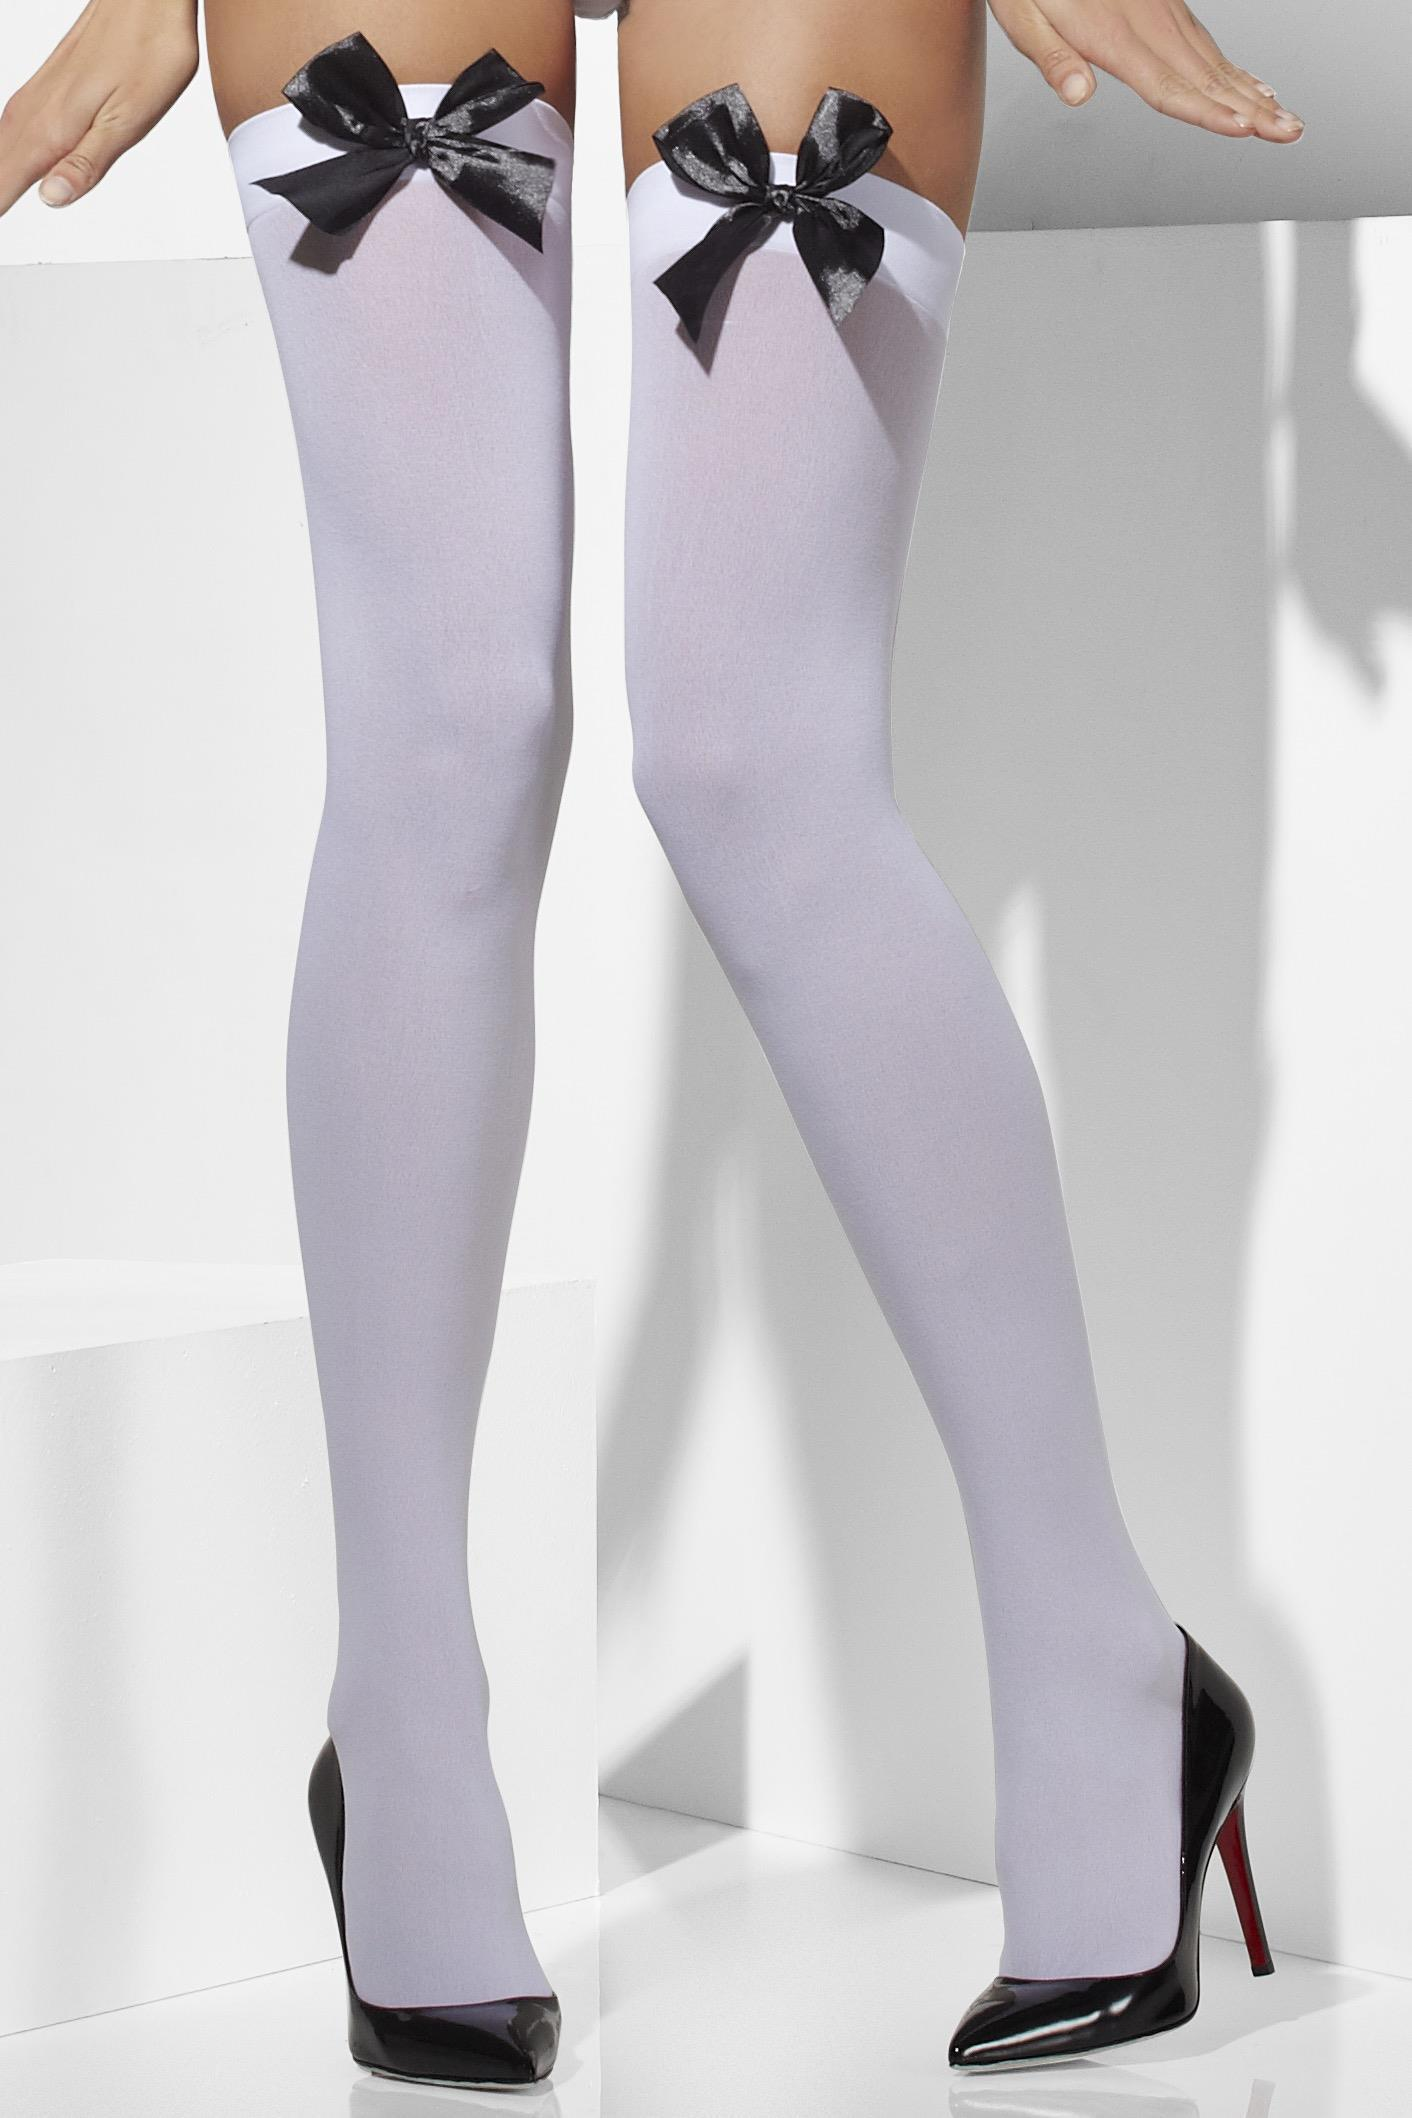 Opaque Hold-Ups white with white Bows